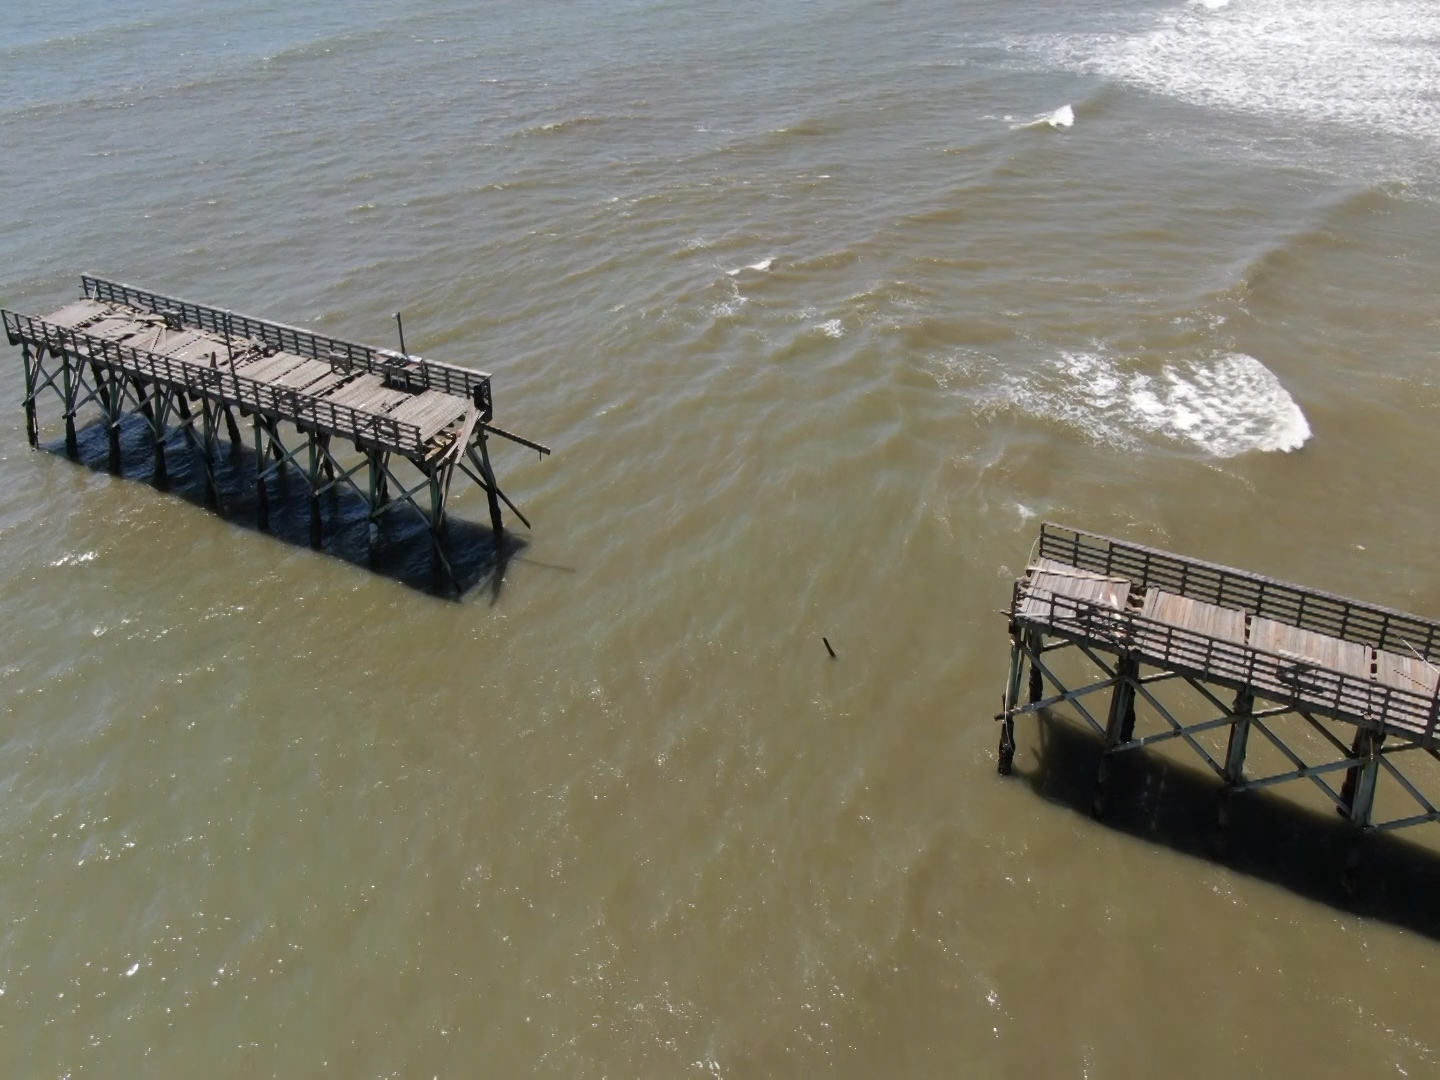 Drone Video A Look At The Damage Done To Sea Cabin Pier